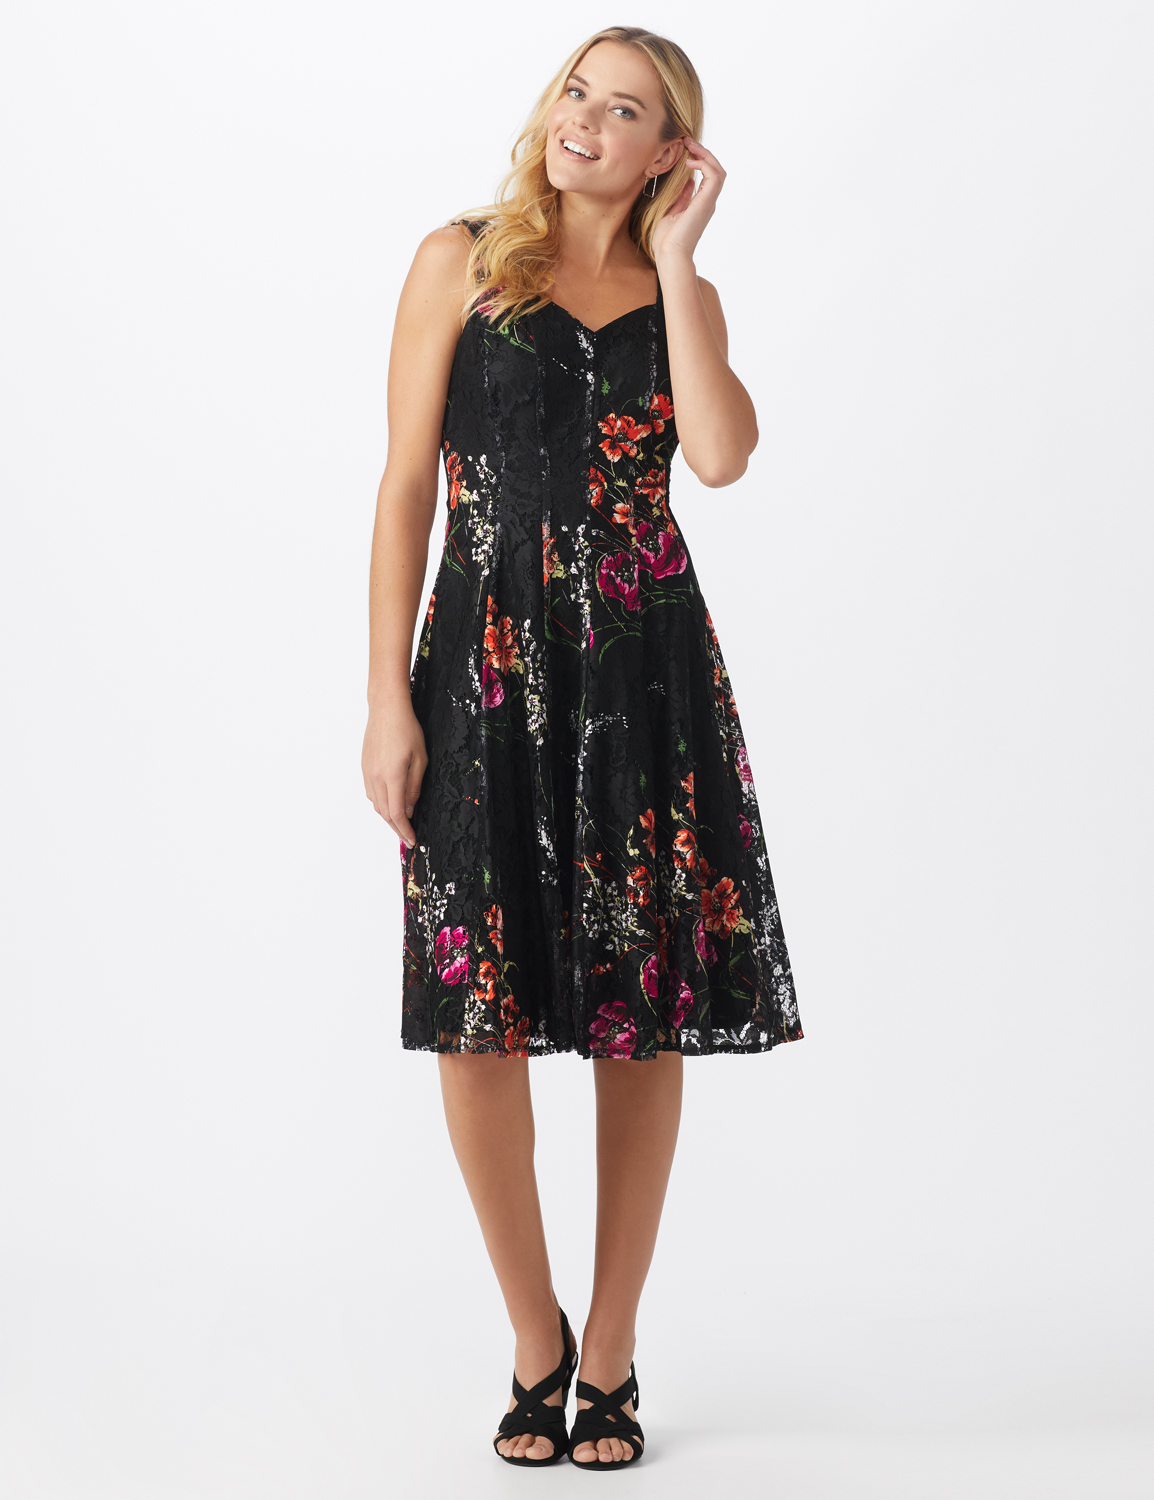 Floral Lace Fit and Flare Dress - Misses -Black/tangerine - Front